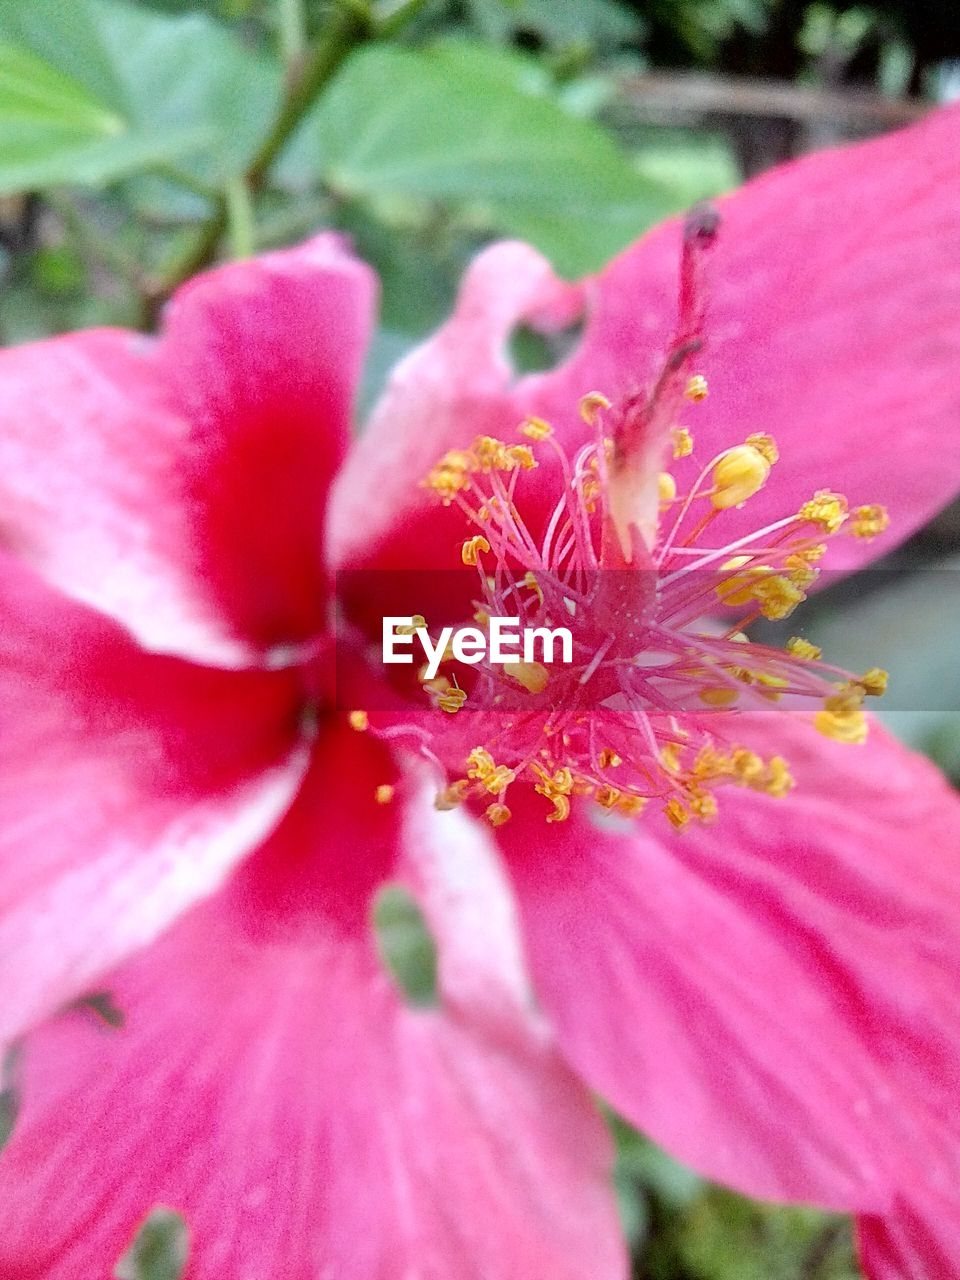 flower, petal, growth, nature, beauty in nature, fragility, pink color, flower head, plant, no people, close-up, freshness, stamen, outdoors, red, day, blooming, hibiscus